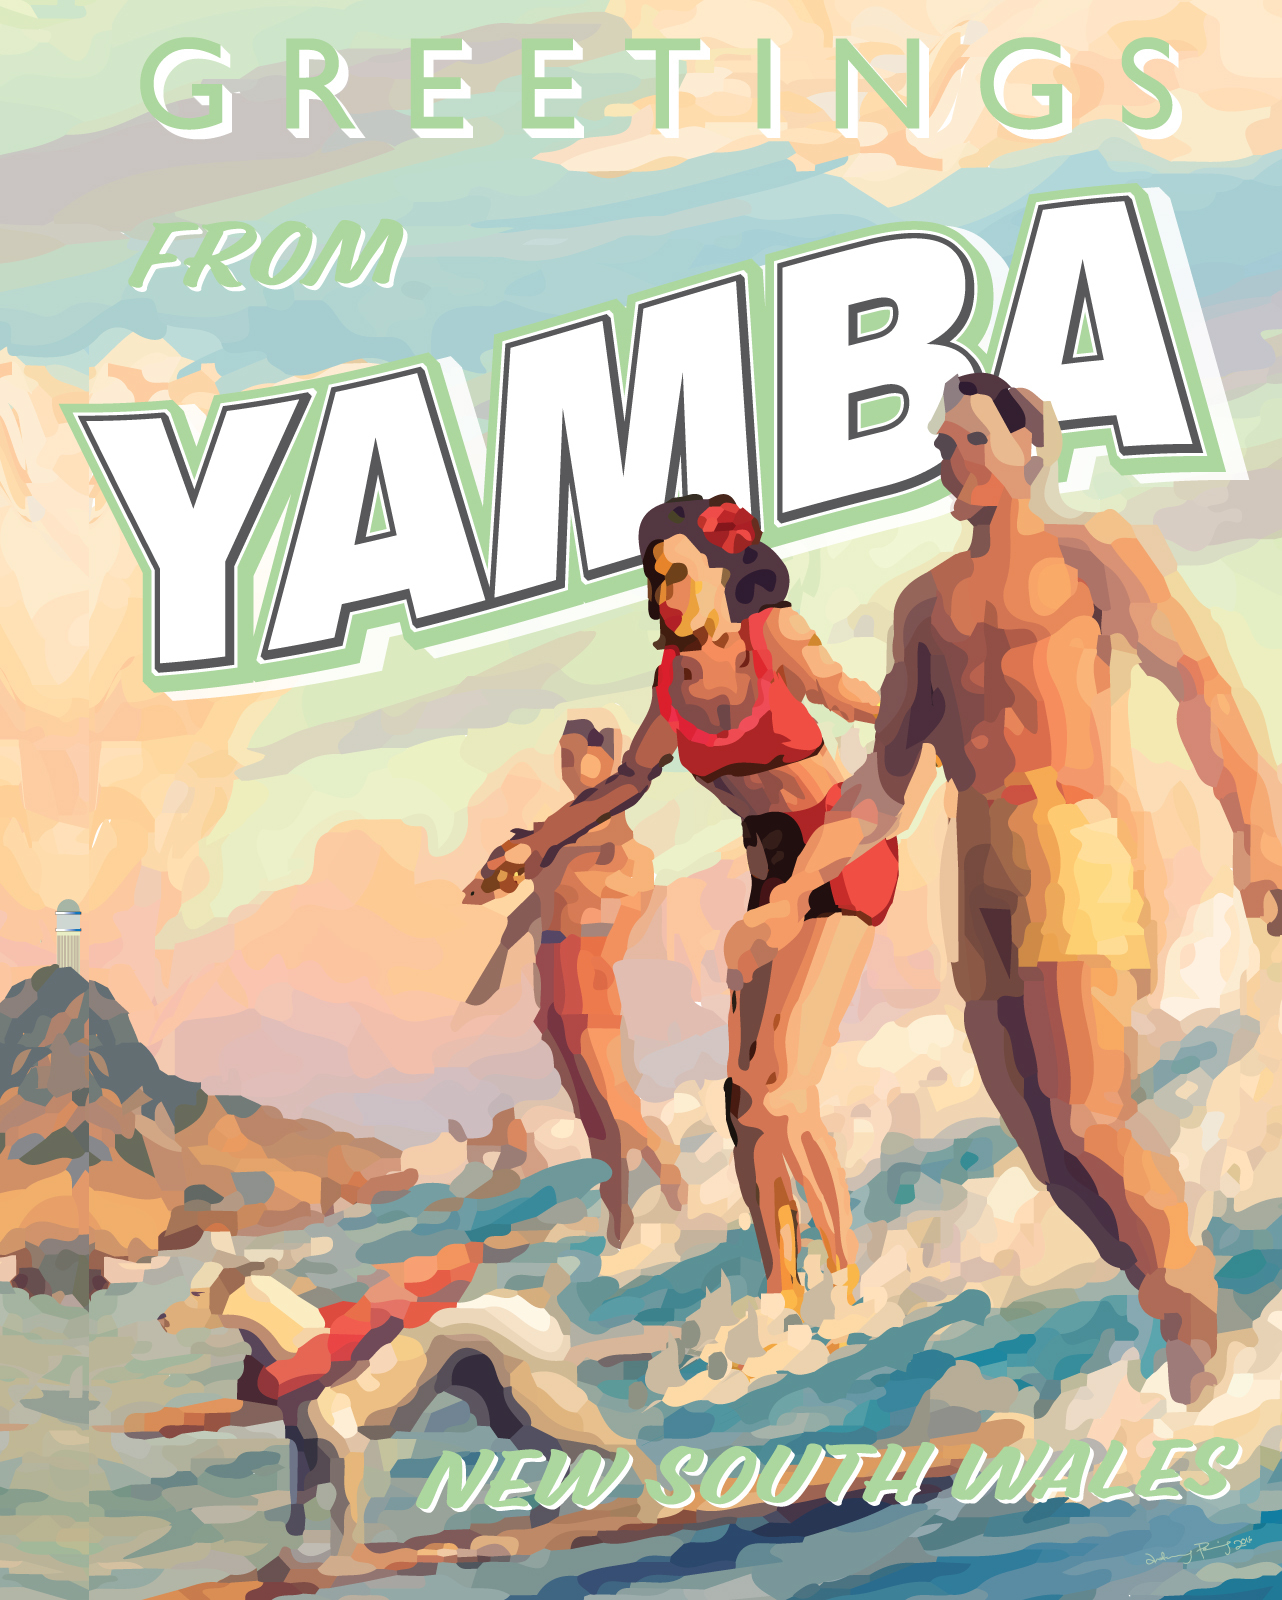 greetings-from-Yamba-1282x1600